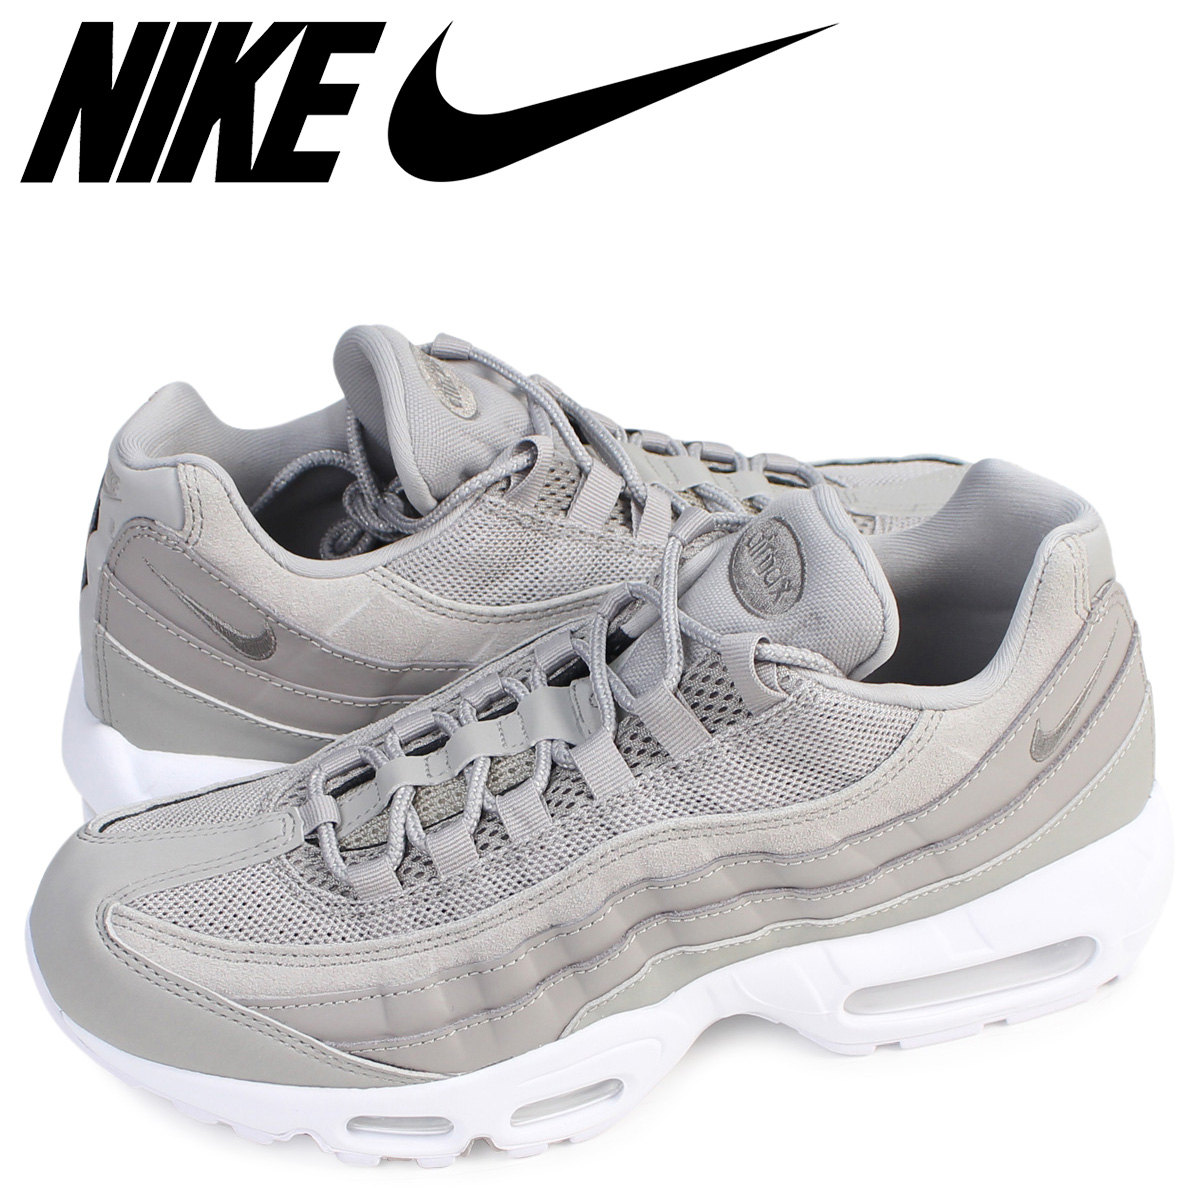 8356ea59a53 Whats up Sports  Nike NIKE Air Max 95 sneakers AIR MAX 95 PREMIUM ...